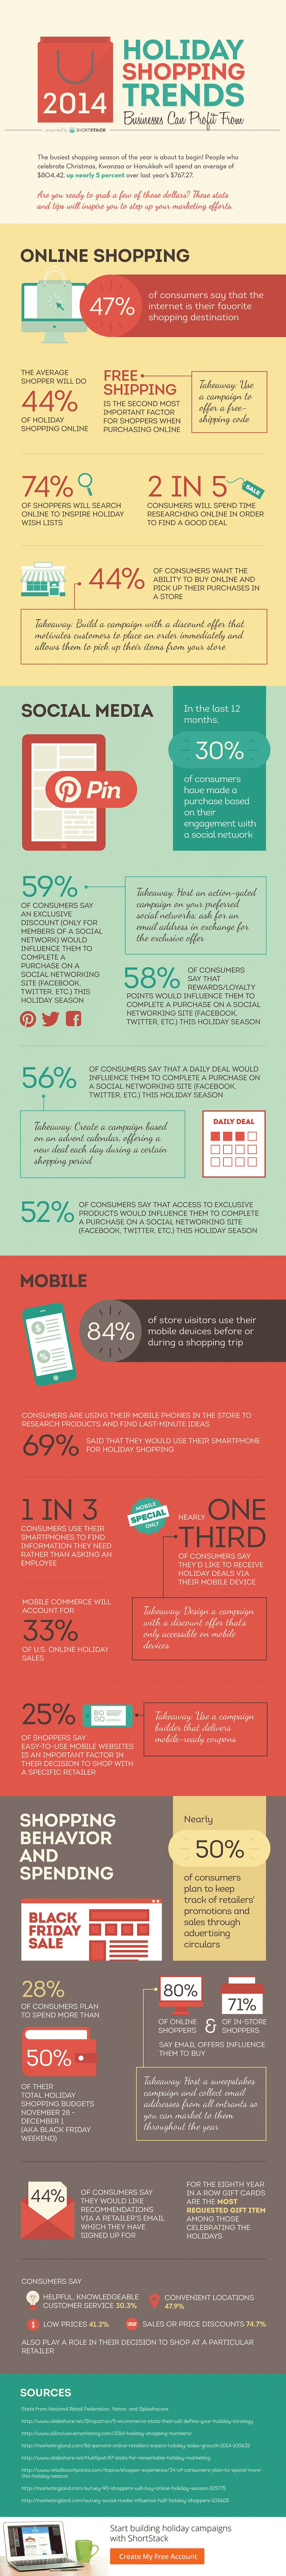 Holiday Shopping Trends Businesses Can Profit From #Infographic #socialmedia